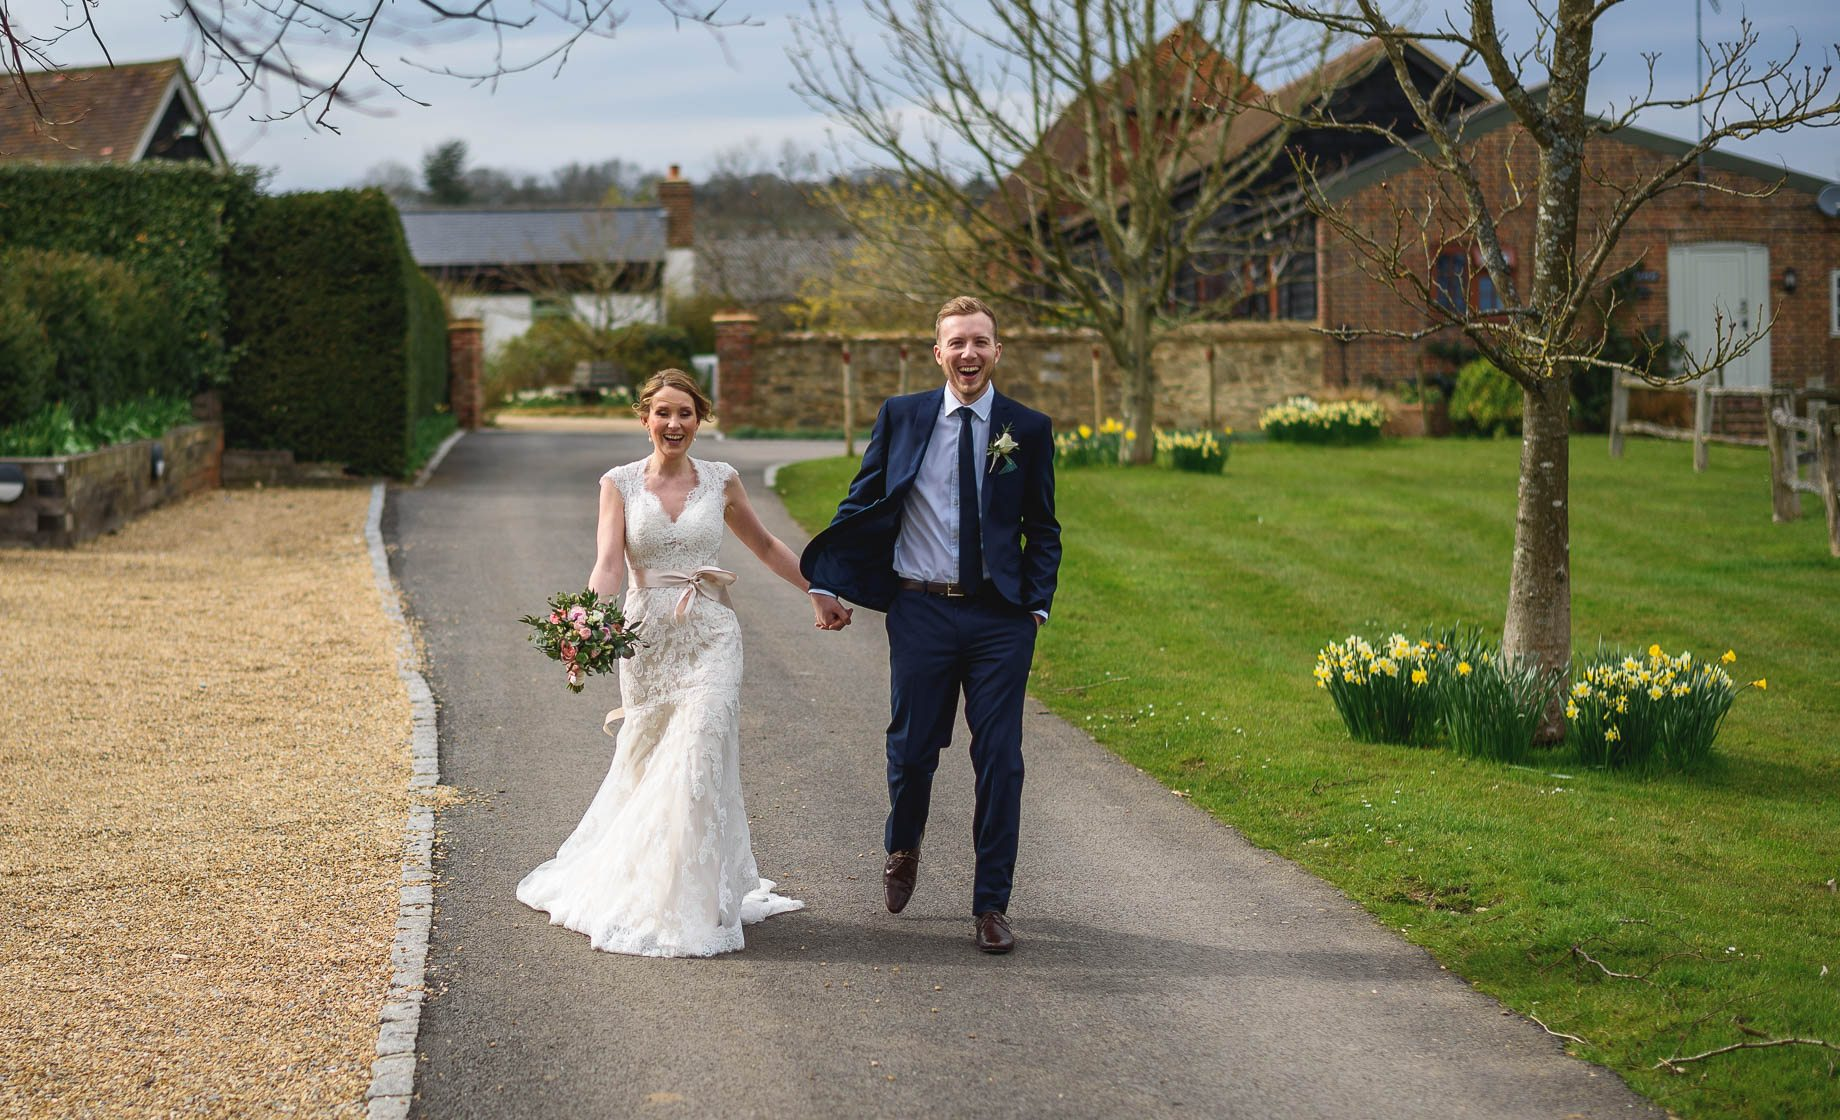 Surrey Wedding Photography by Guy Collier - Becca and James (64 of 145)